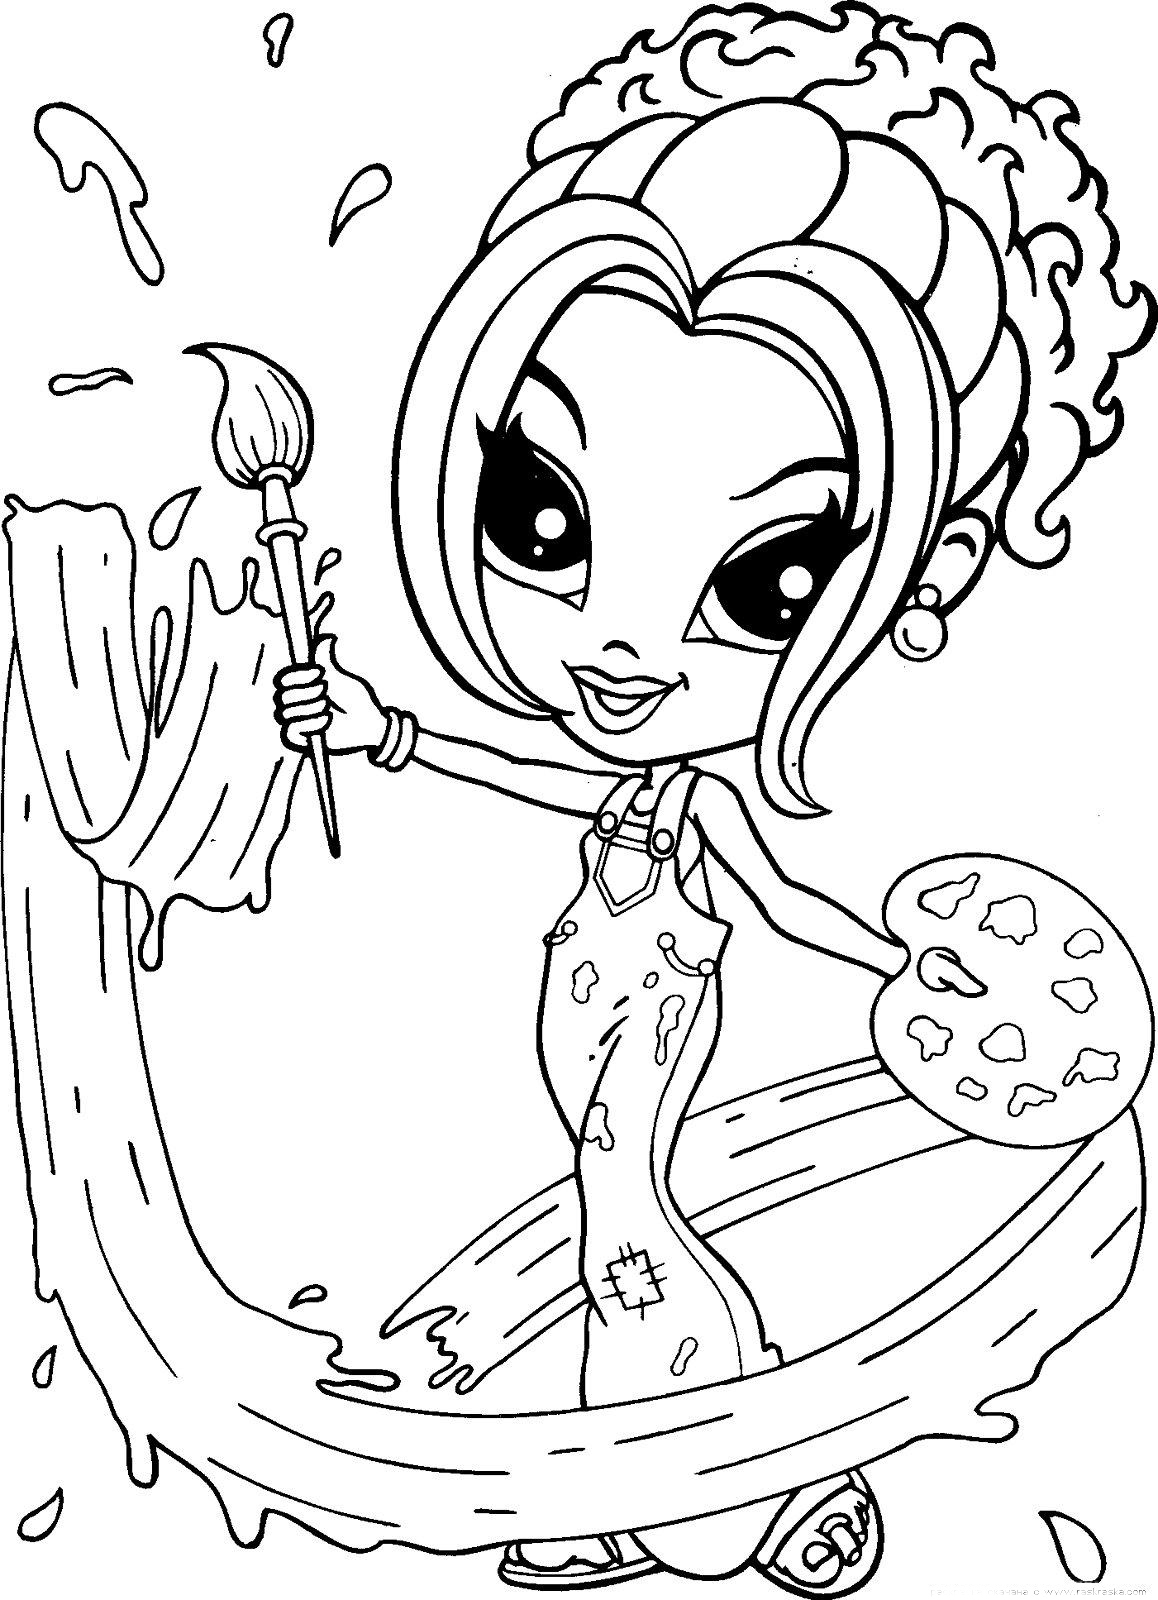 coloring pages printable free lisa frank animals coloring pages download and print for free free coloring printable pages